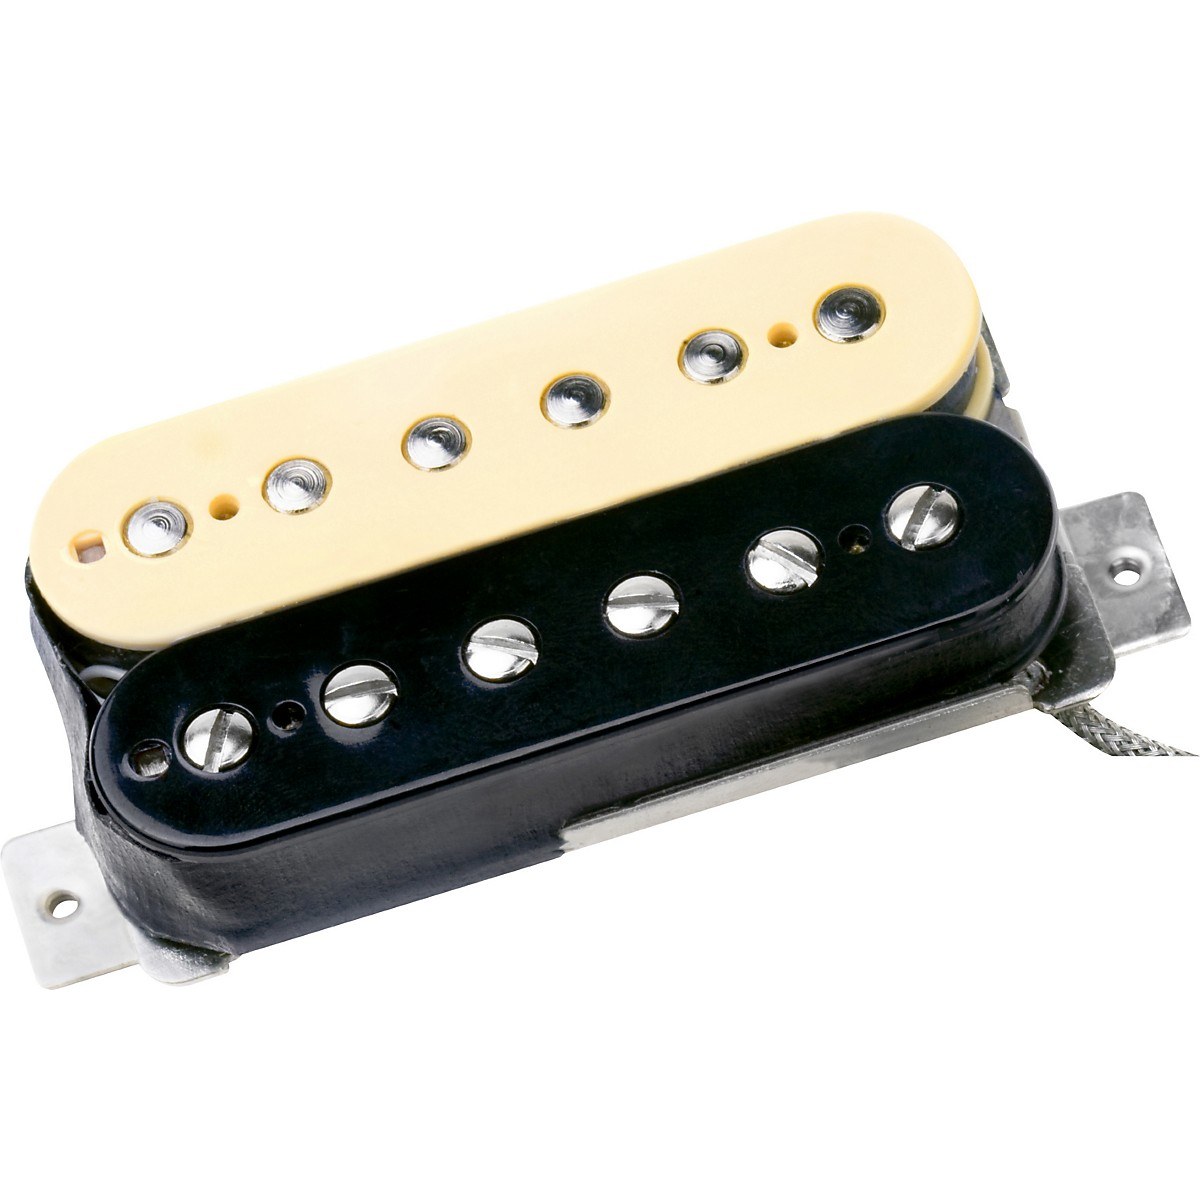 Seymour Duncan APH-2n Alnico II Pro Slash Humbucker Electric Guitar Neck Pickup